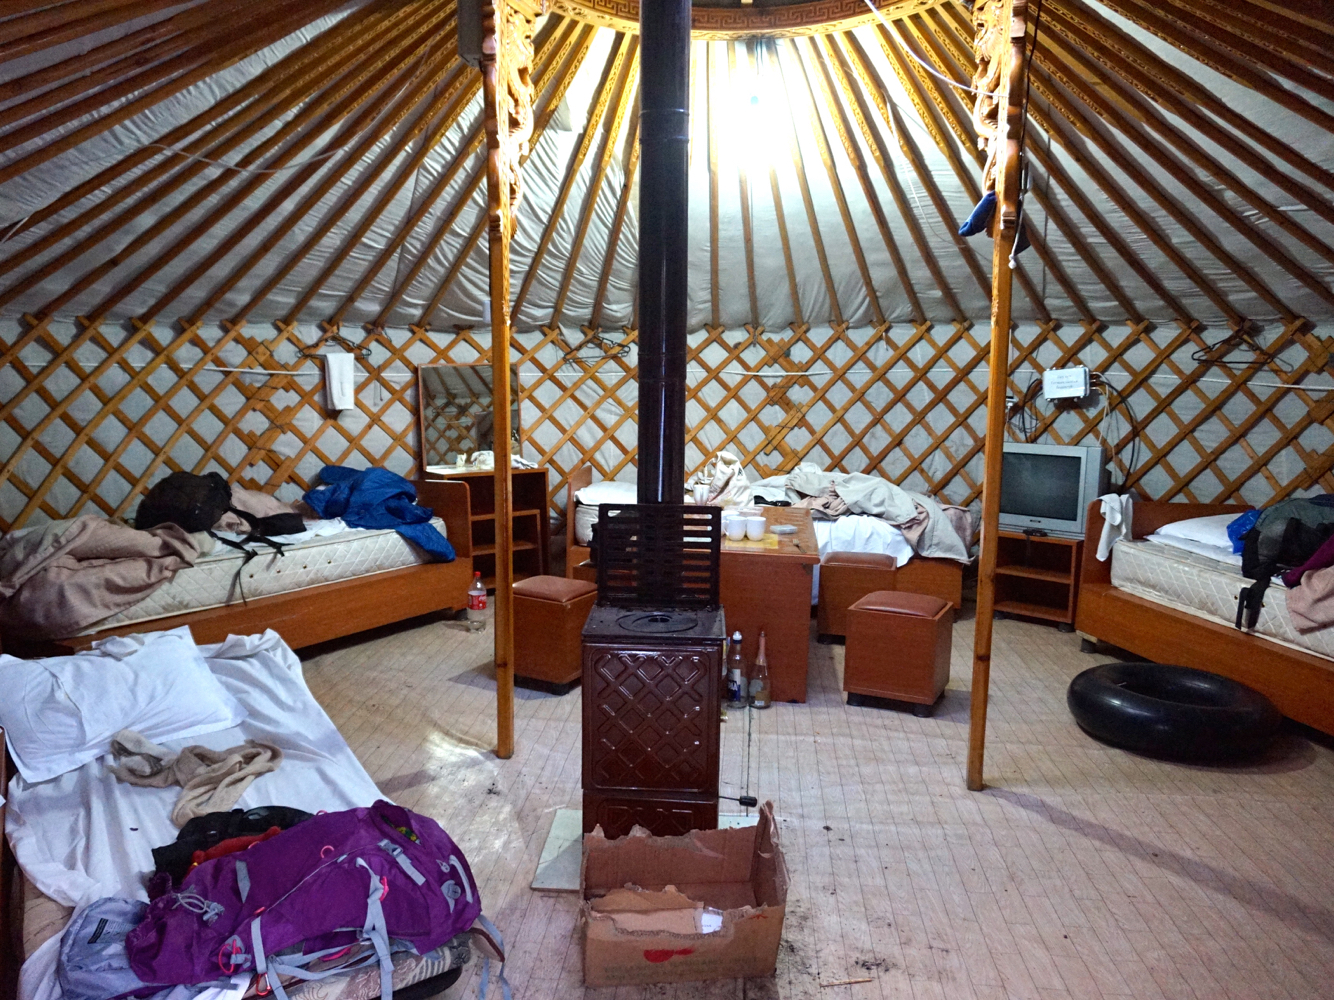 The inside of our ger in Terelj (forgive the mess).